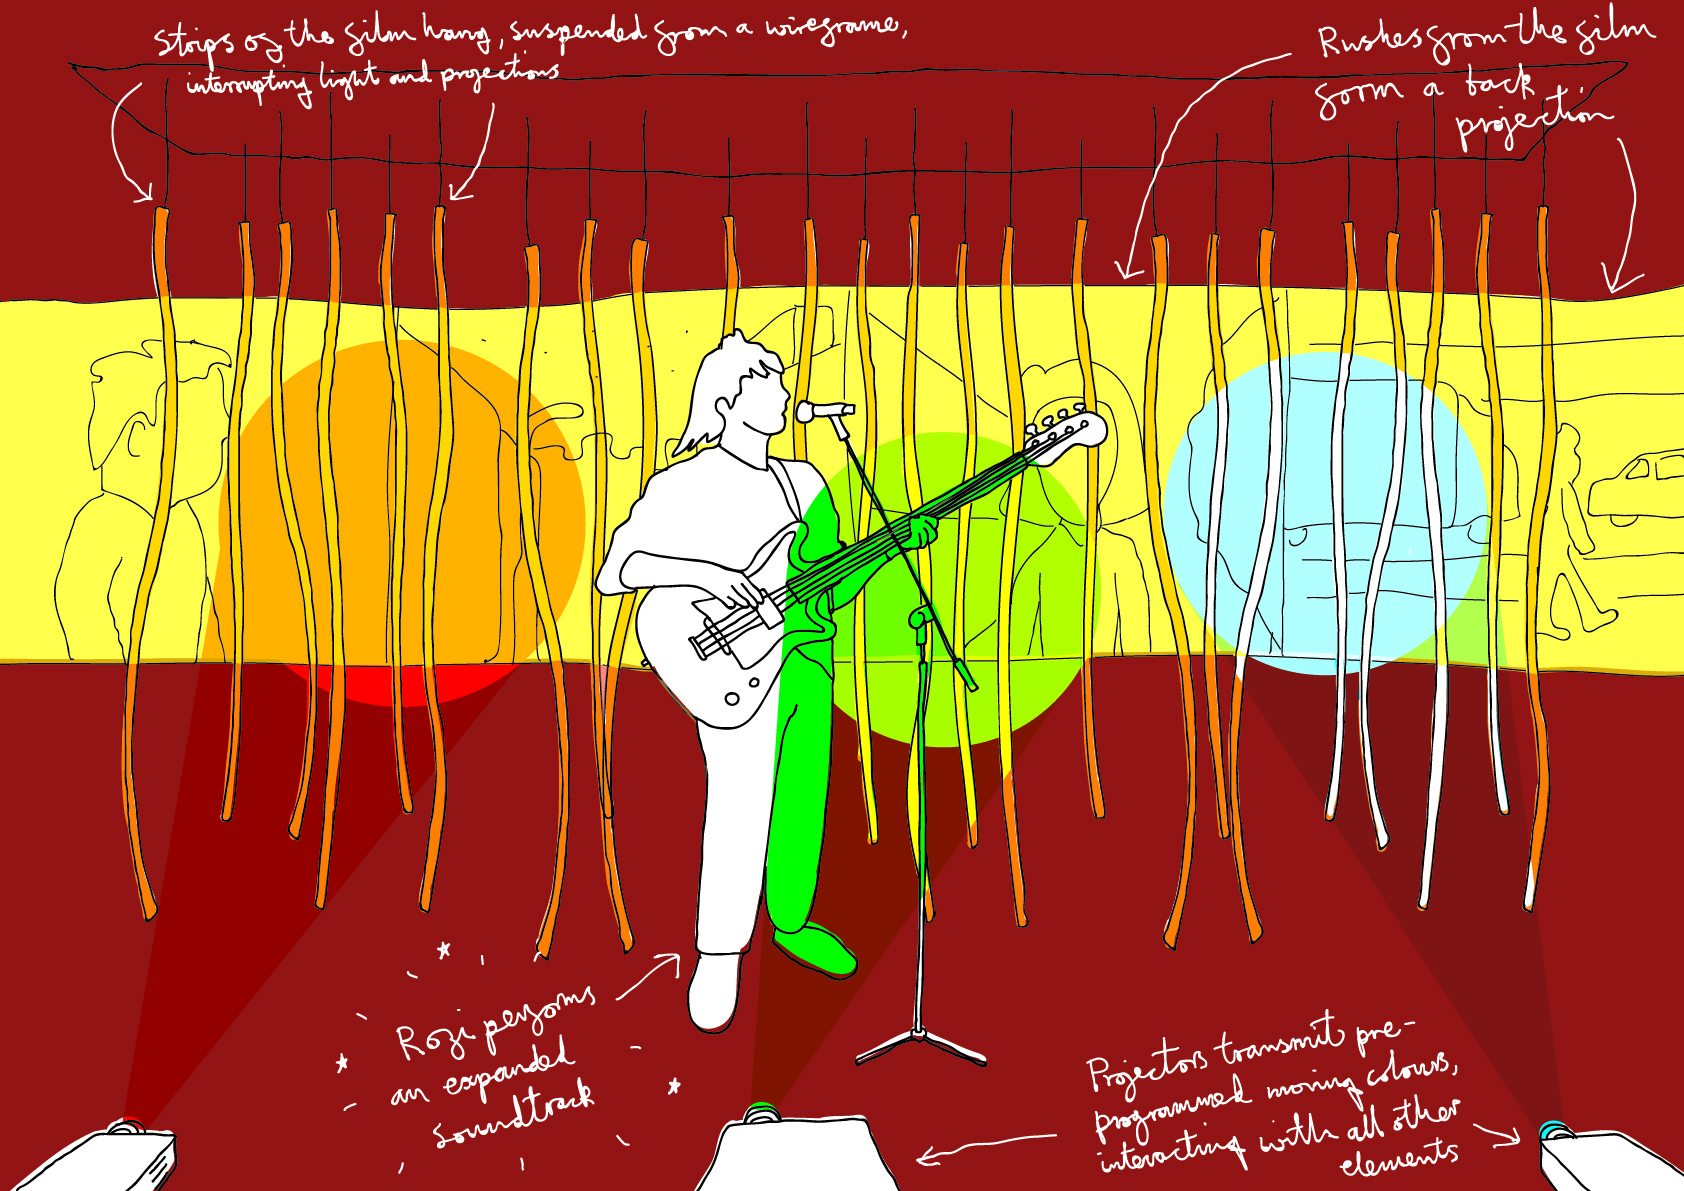 Sketch showing proposed live performance elements (click to enlarge)